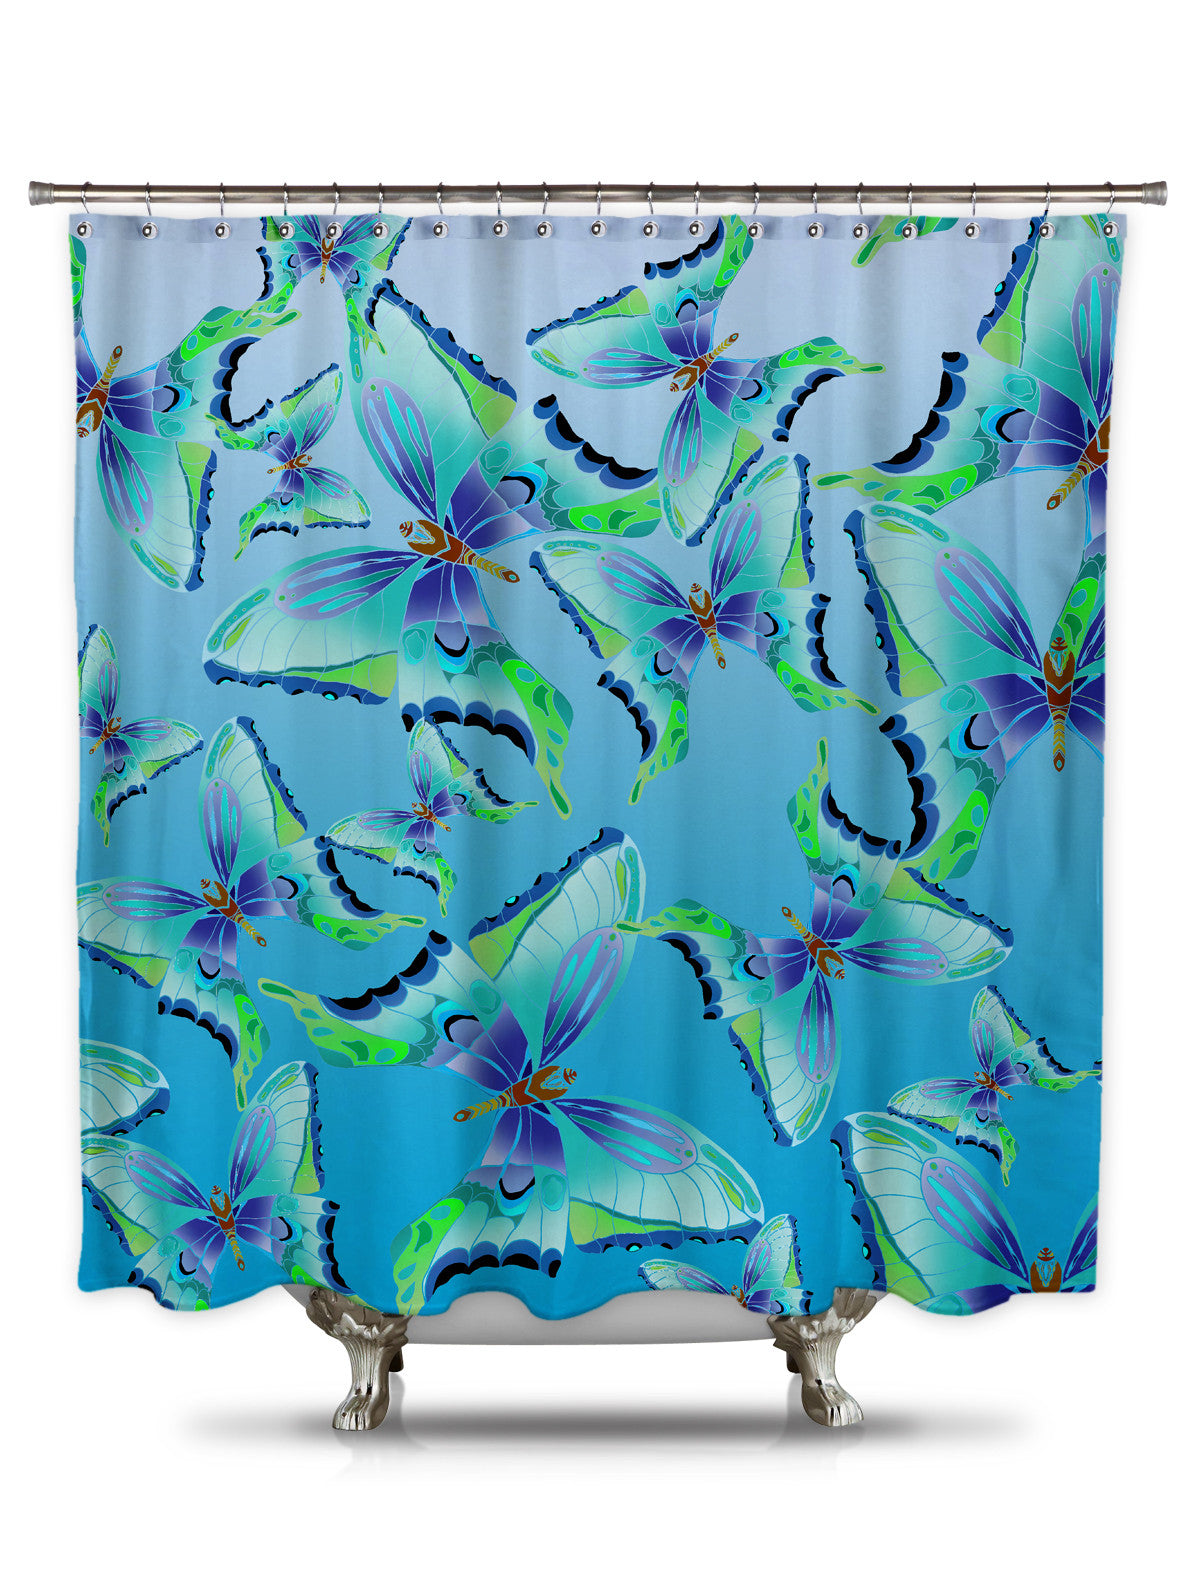 Pattern of Butterflies by Catherine Holcombe Fabric Shower Curtain